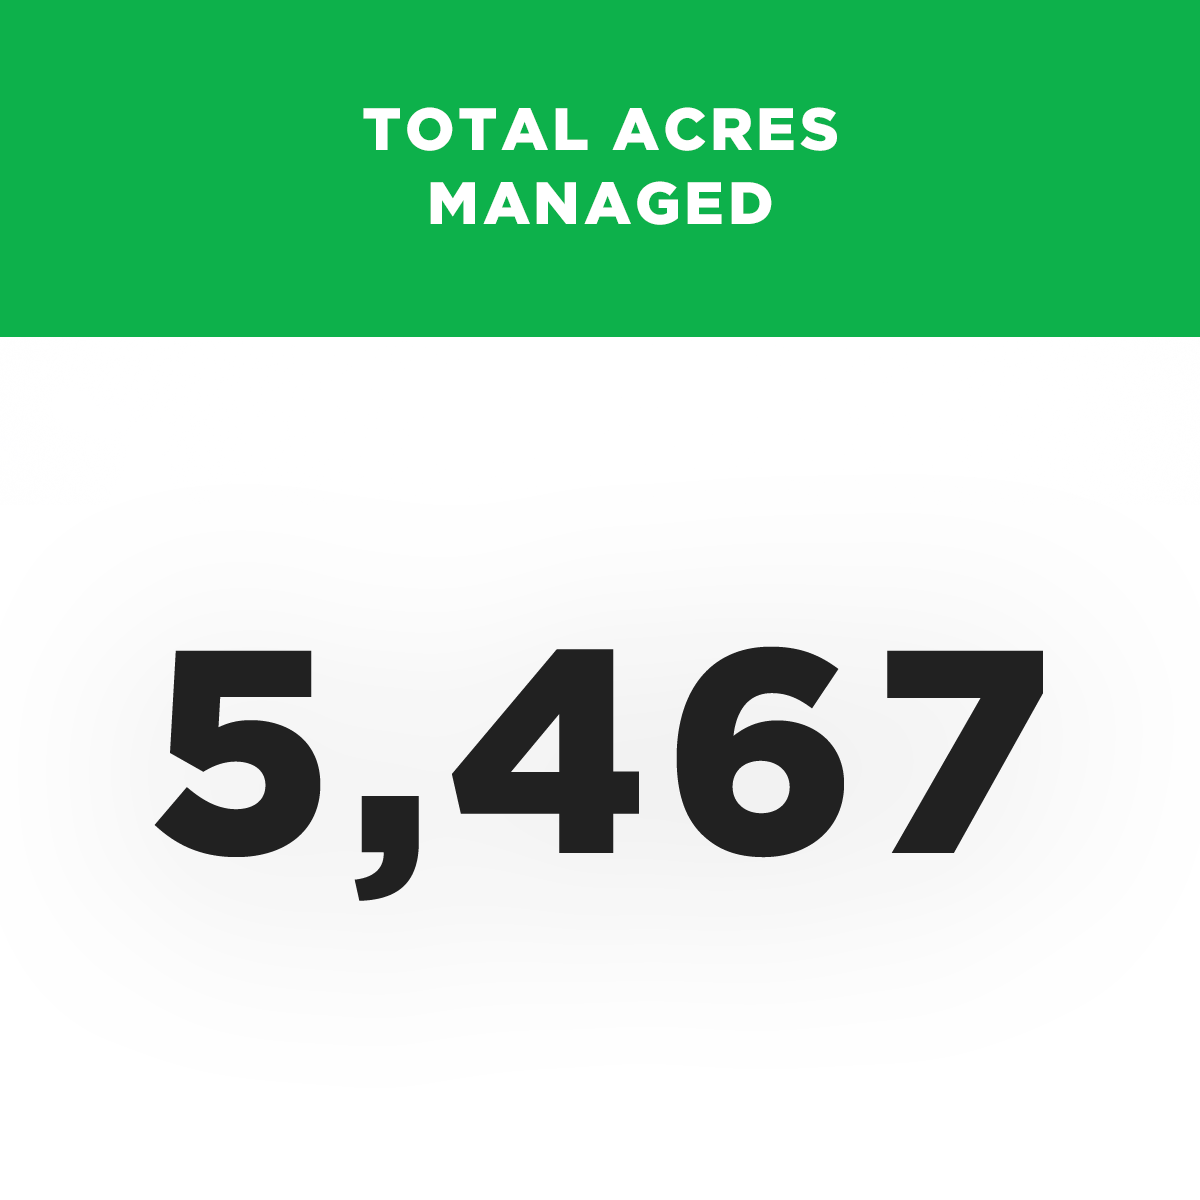 Total Acres Managed - 5,467